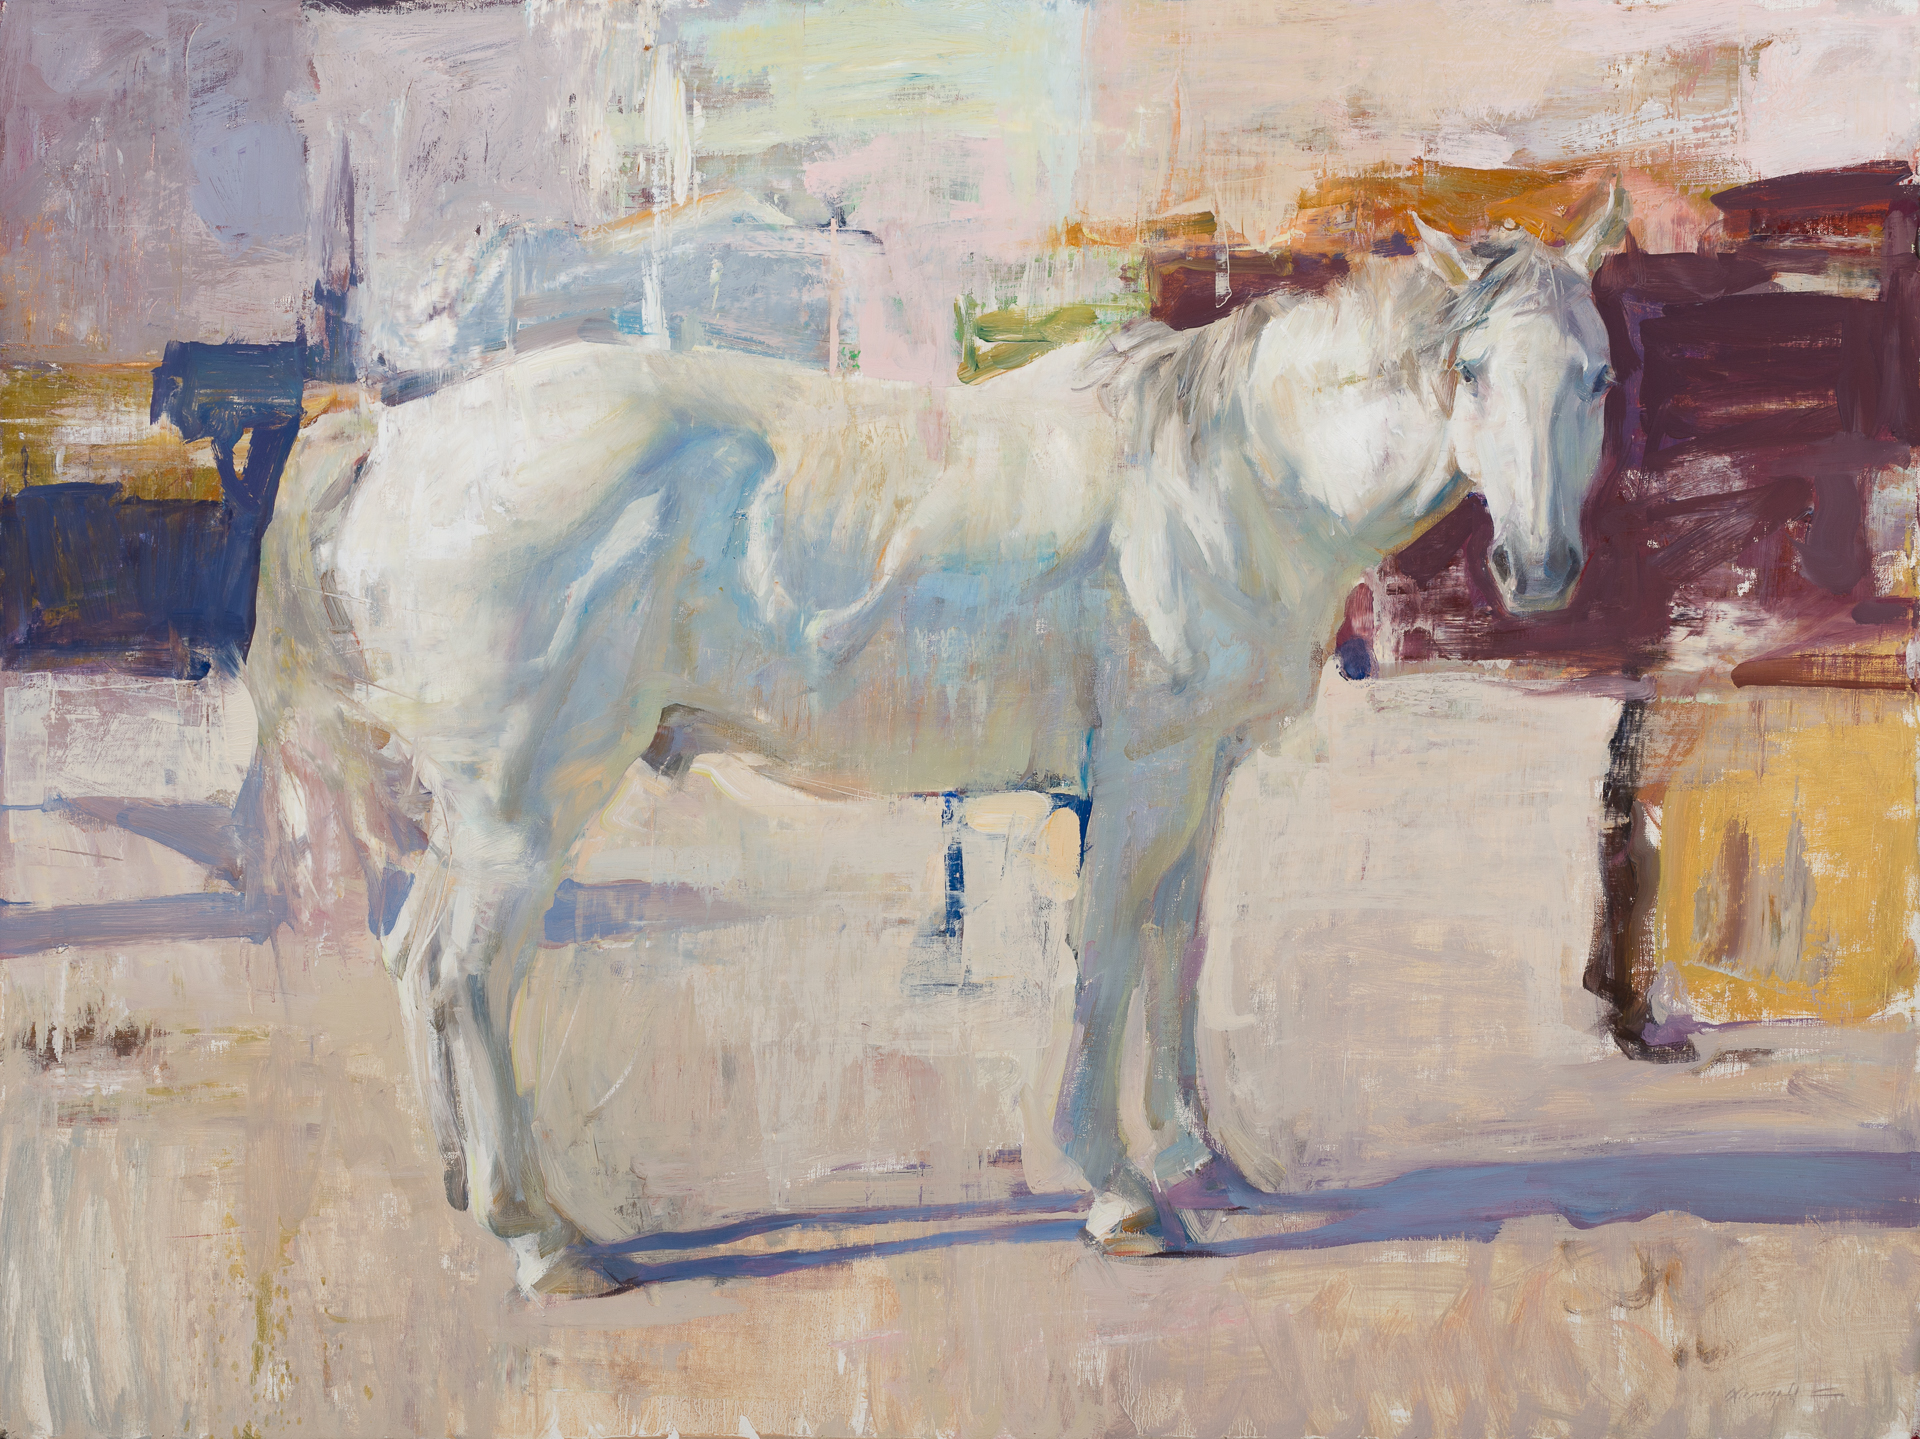 White Horse with Abstraction by Quang Ho